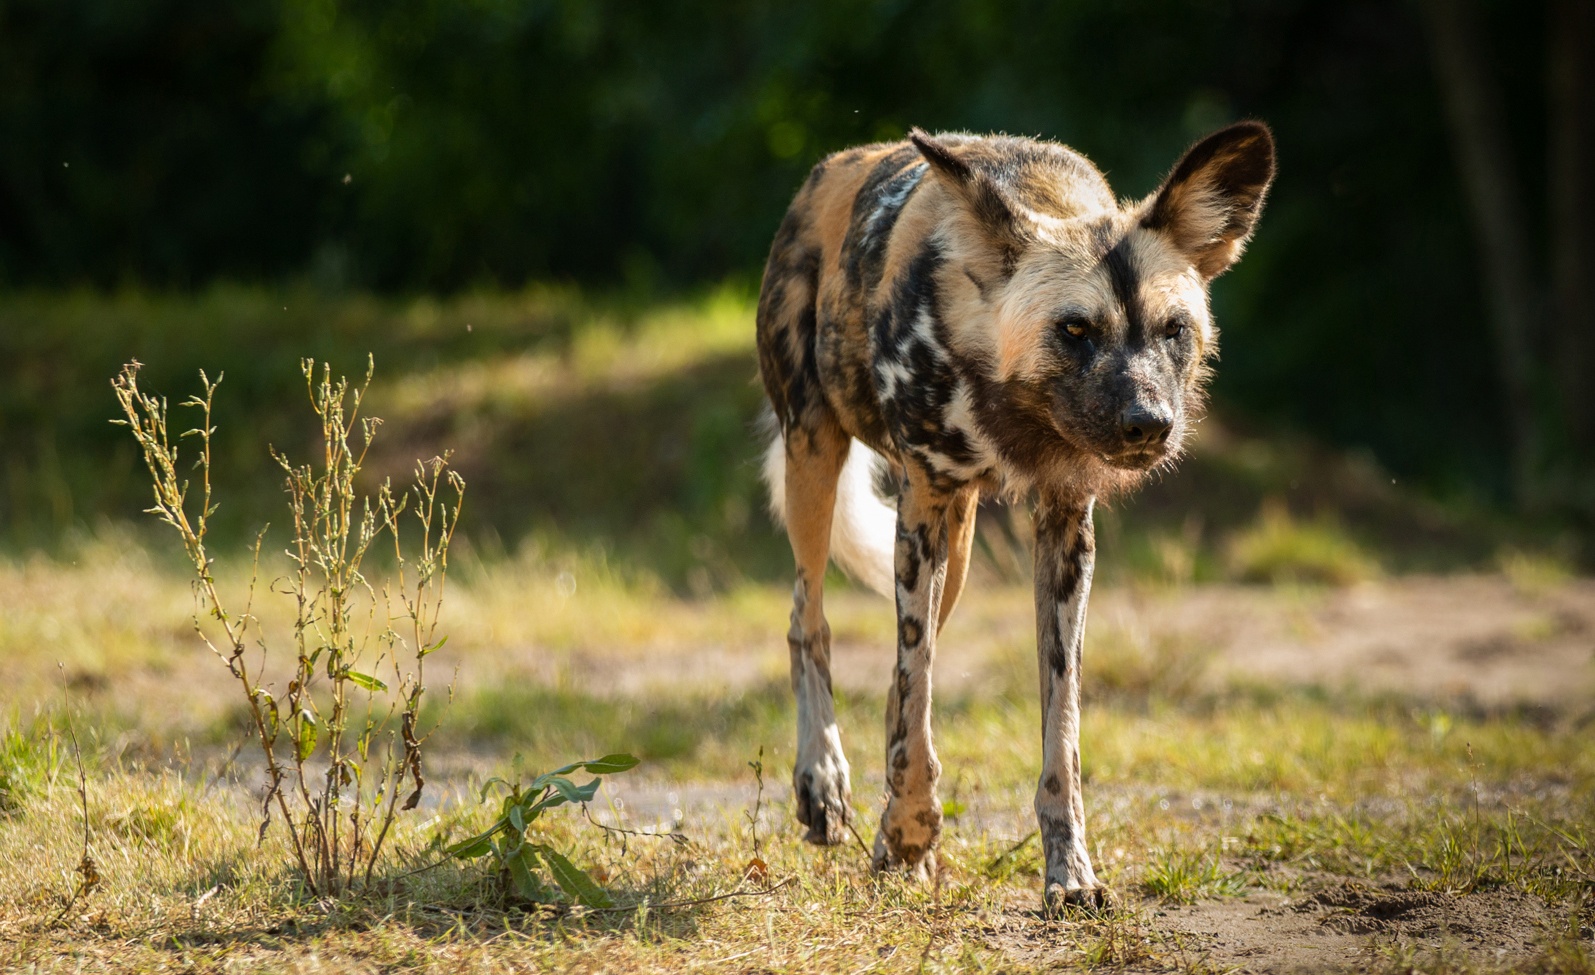 African Painted Dog at Chester Zoo, by Matthew Polke